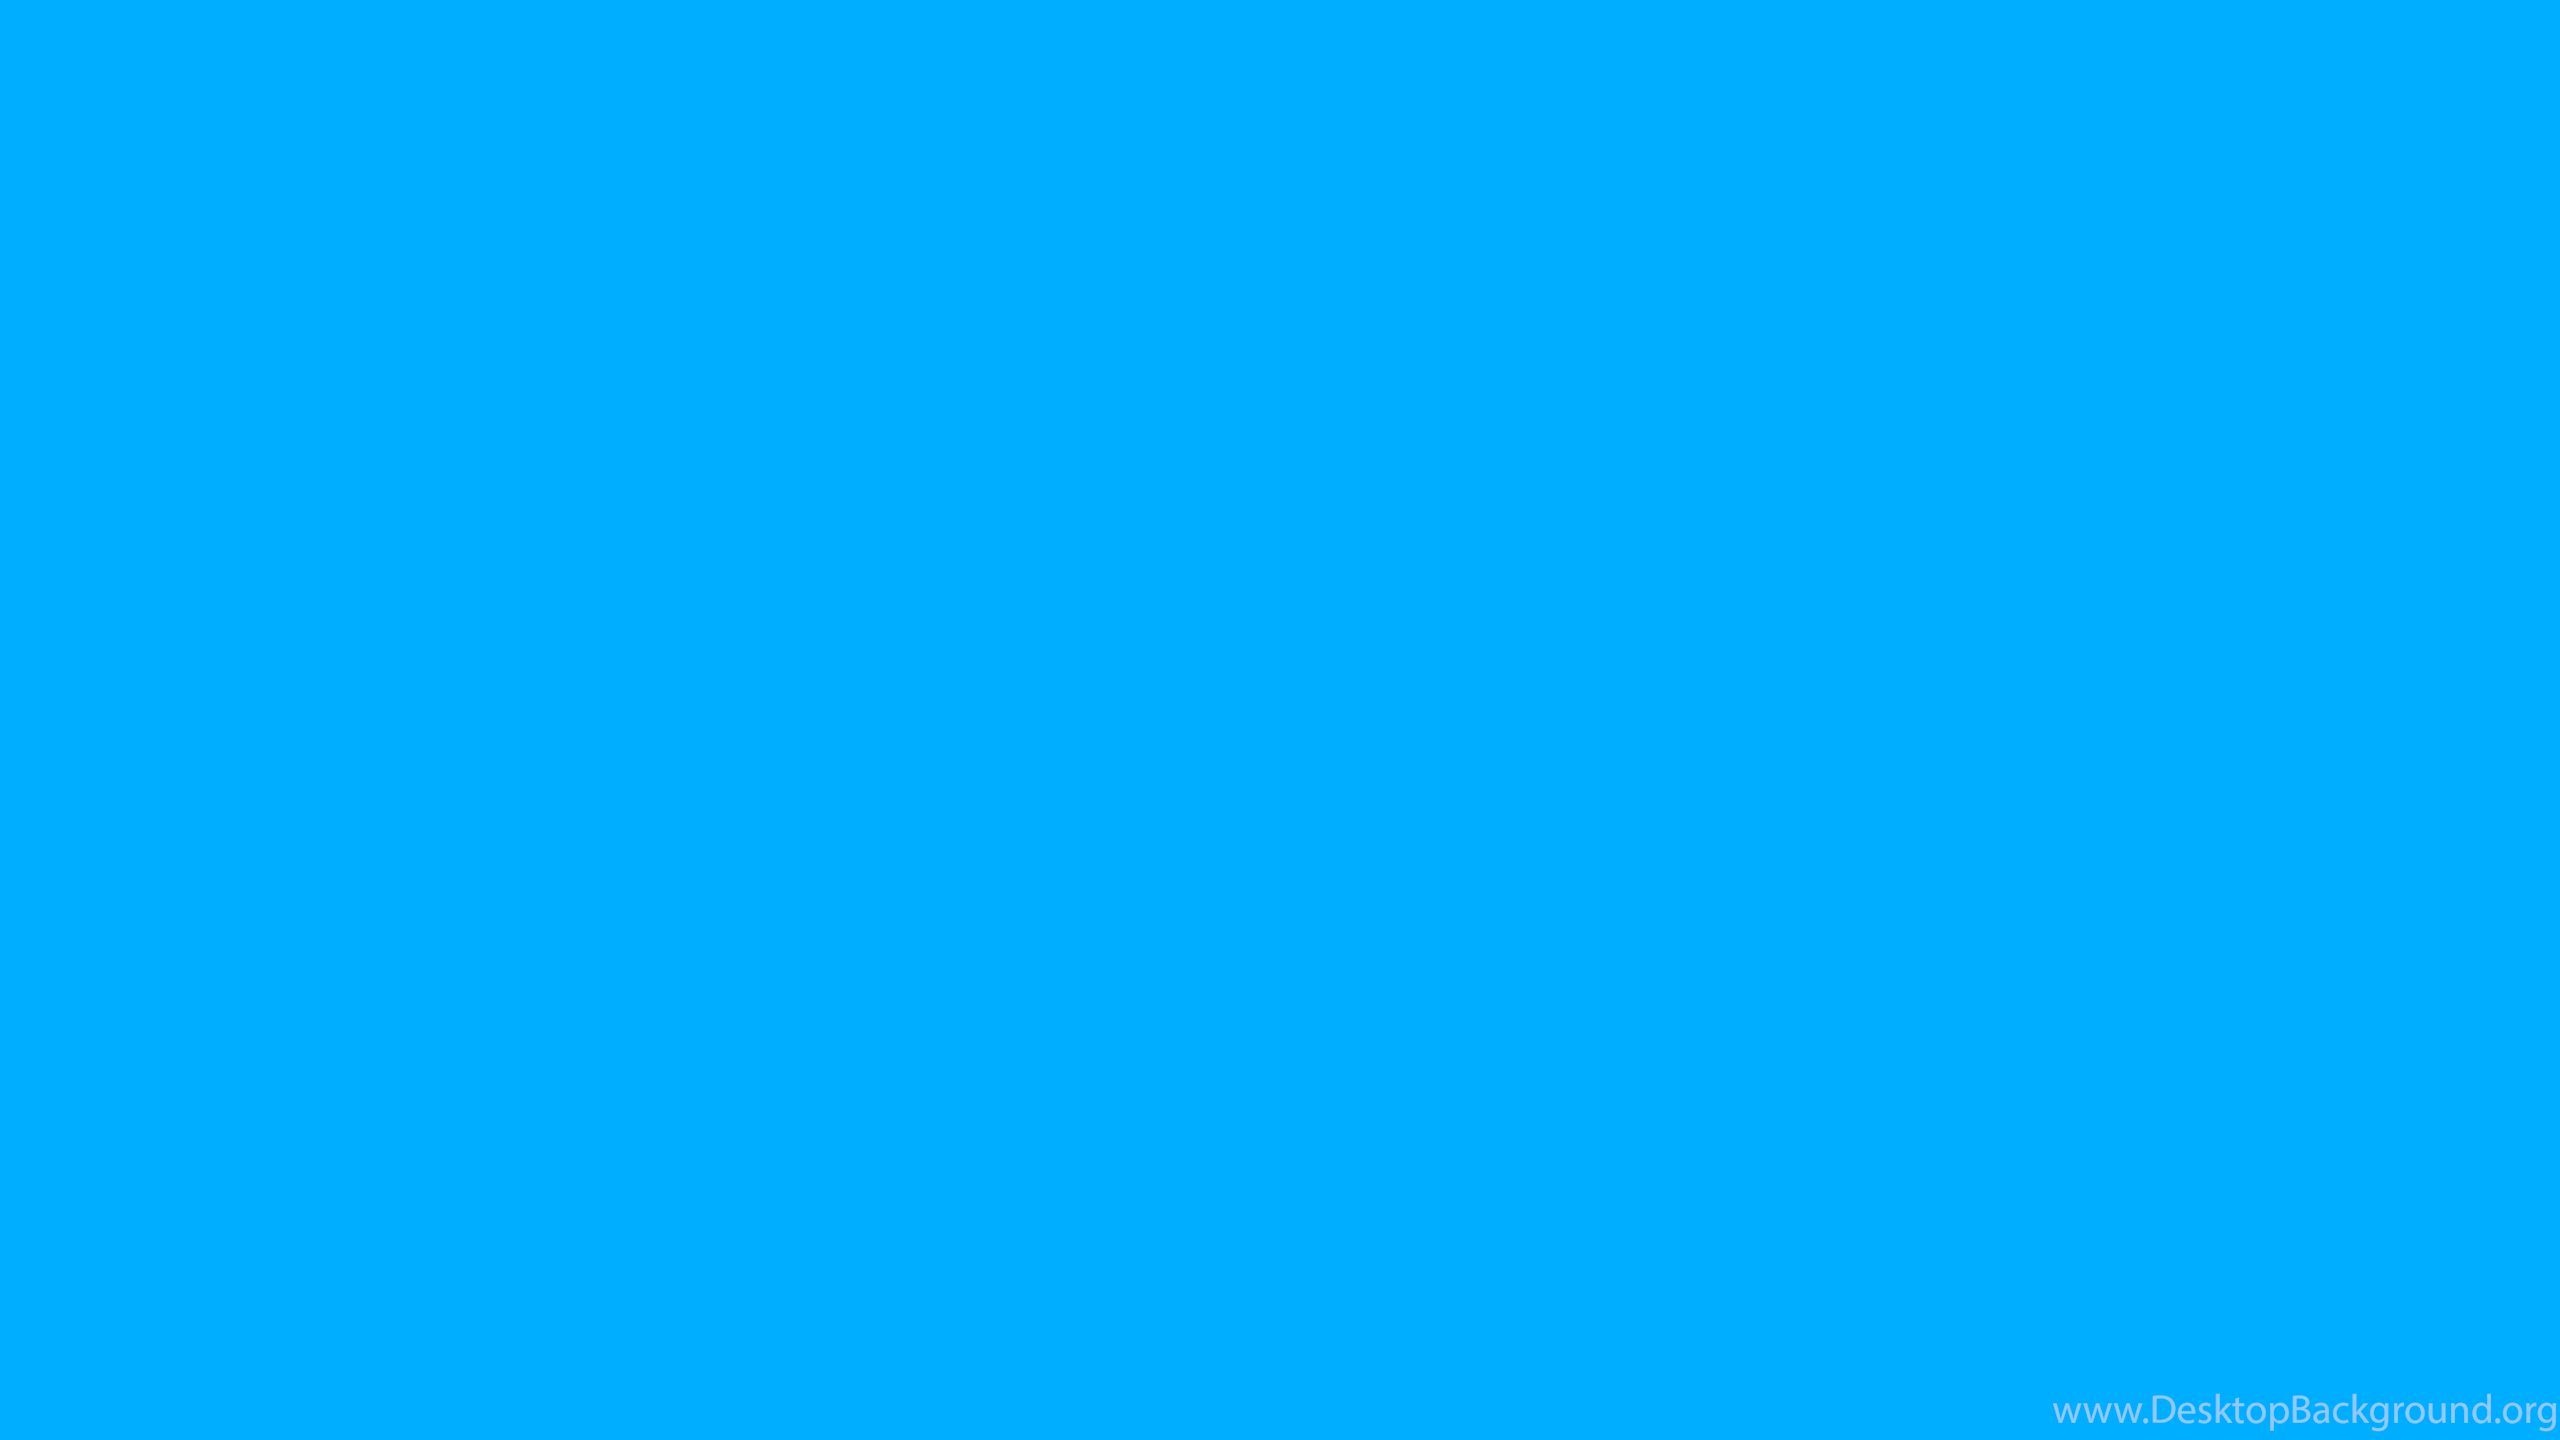 hd plain blue wallpapers high resolution full size